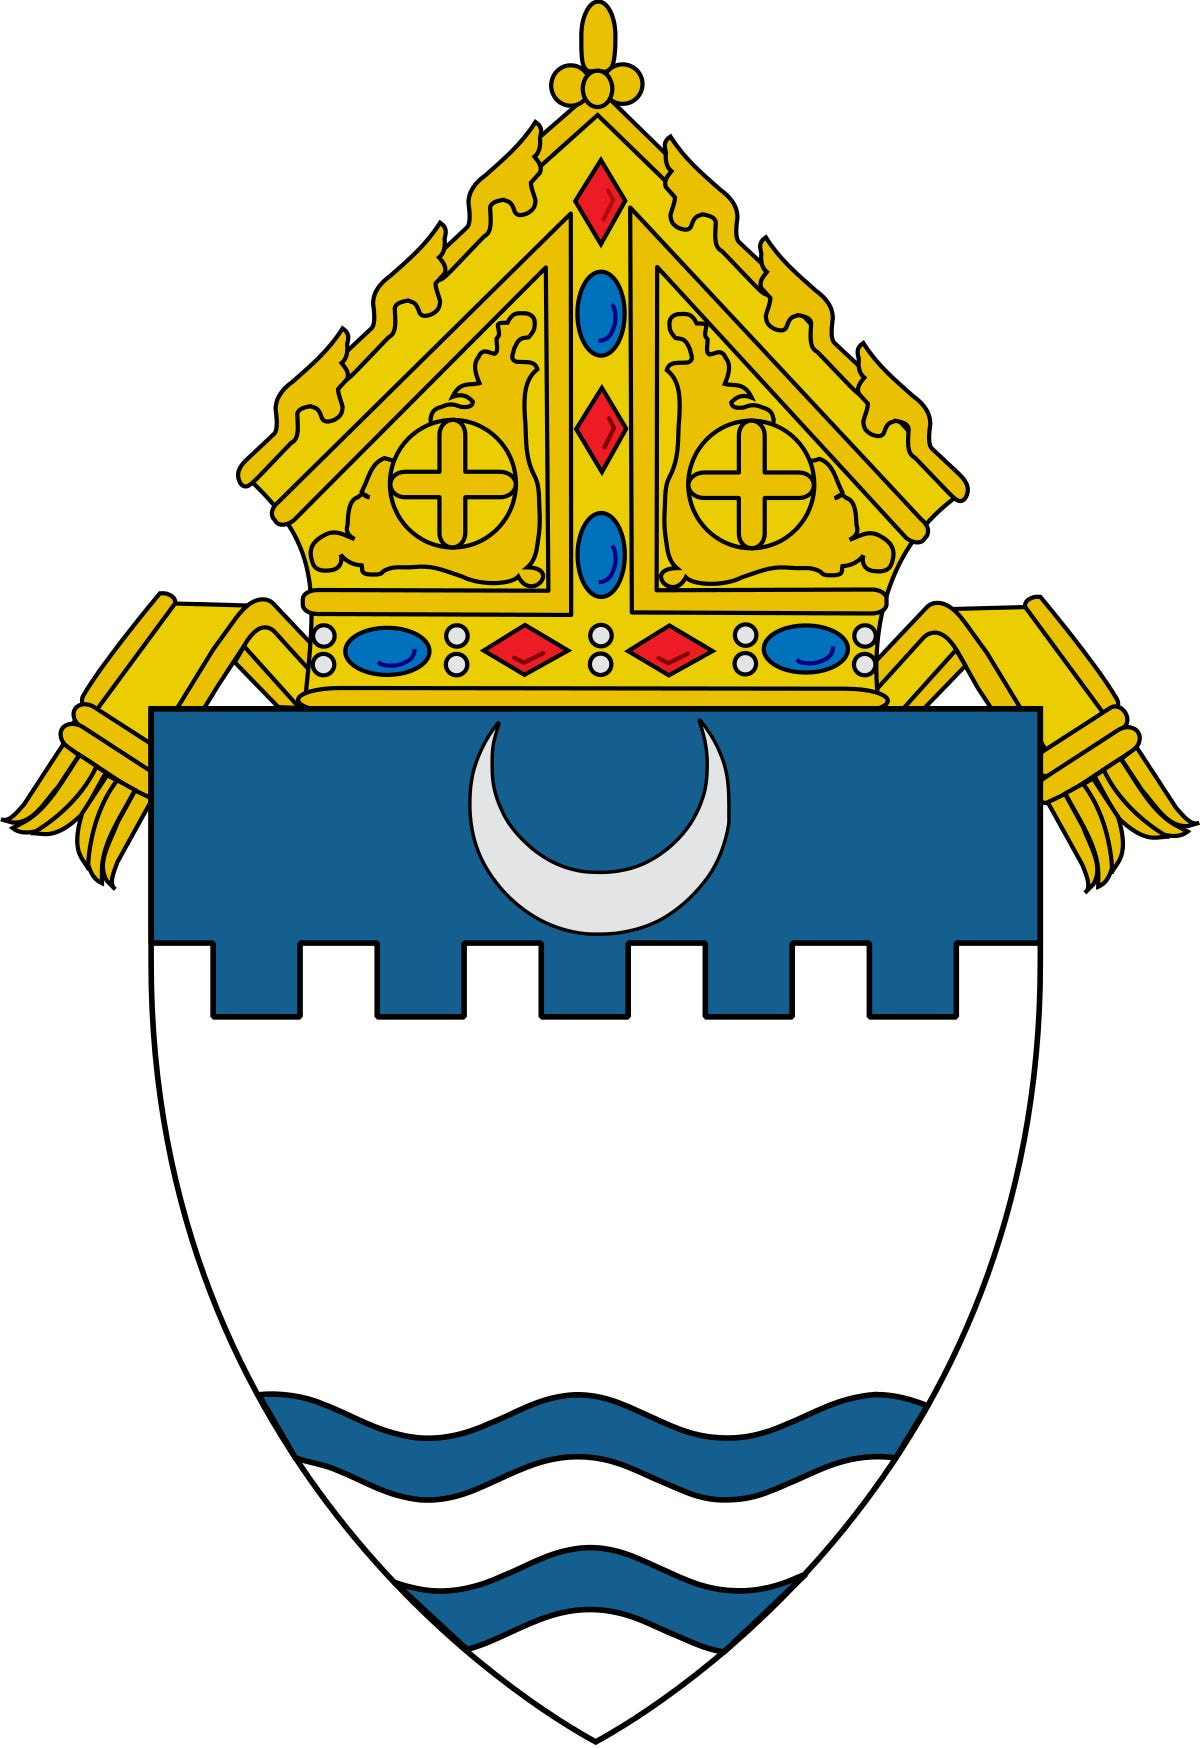 Evansville Diocese to list names of priests accused of abuse